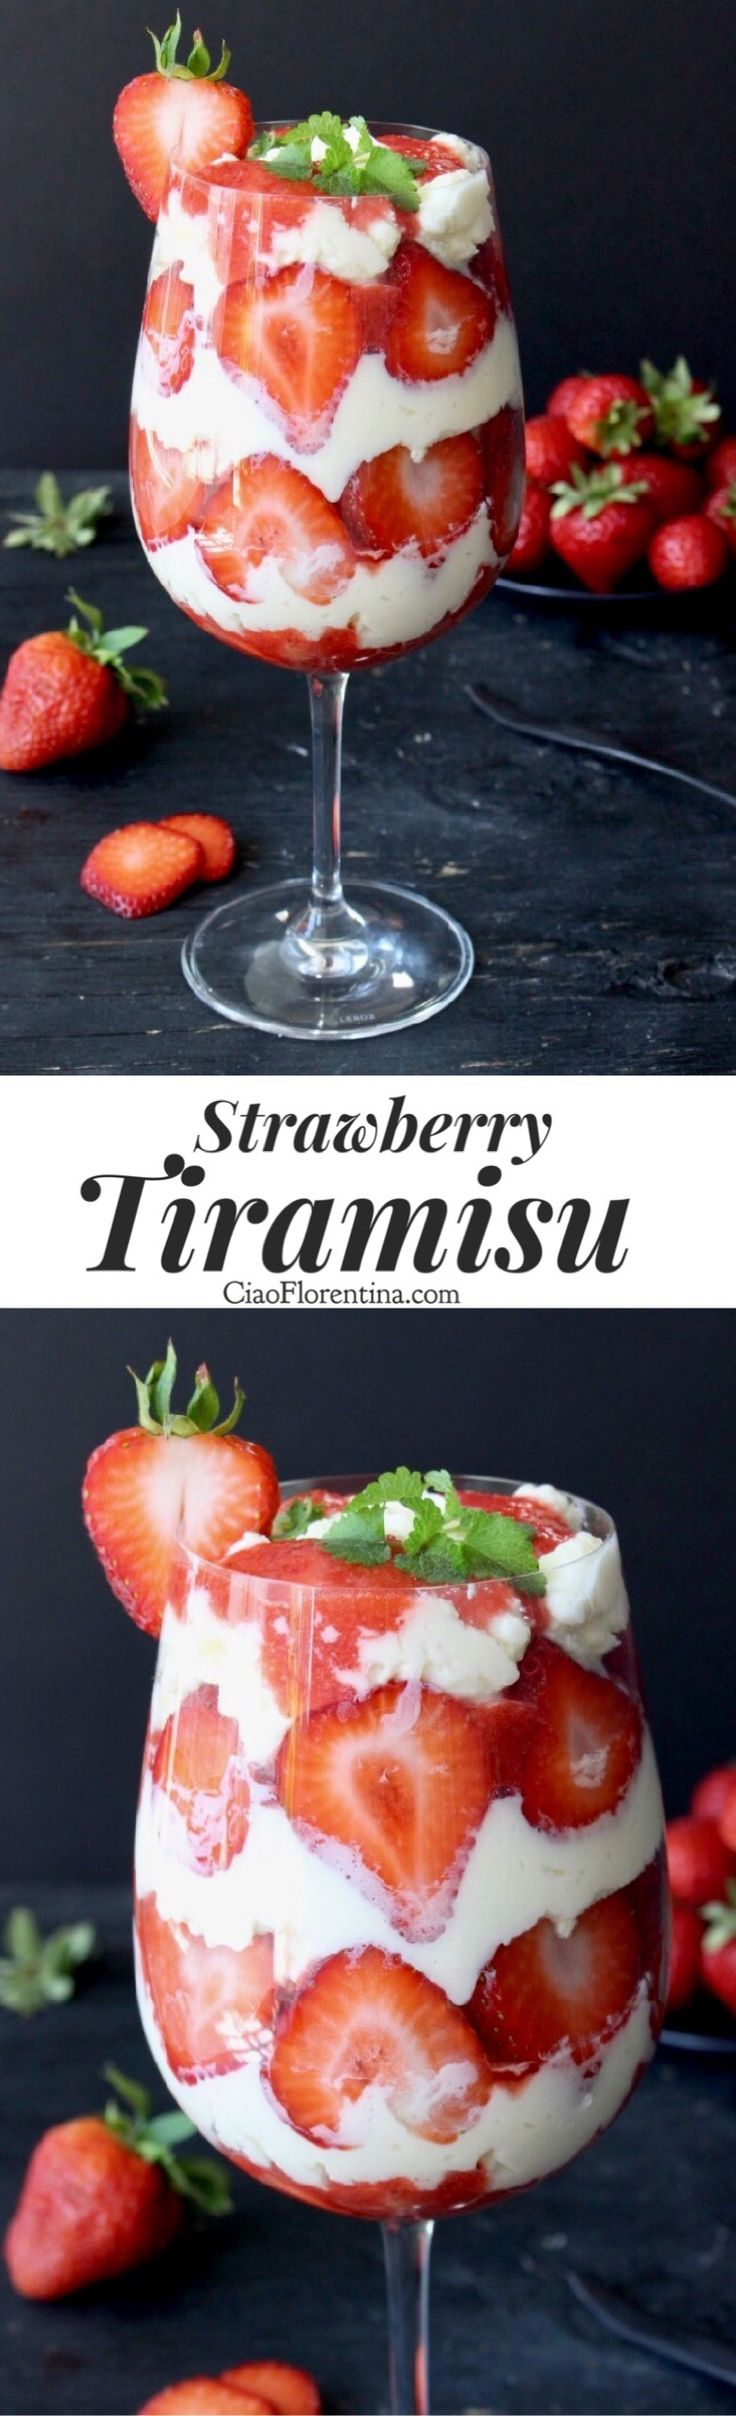 Easy Strawberry Tiramisu Dessert With Italian Mascarpone, Ladyfinger cookies and Fresh Strawberries Can be made with or without eggs, keep it kid friendly or add alcohol for a grown up treat   CiaoFlorentina.com @CiaoFlorentina